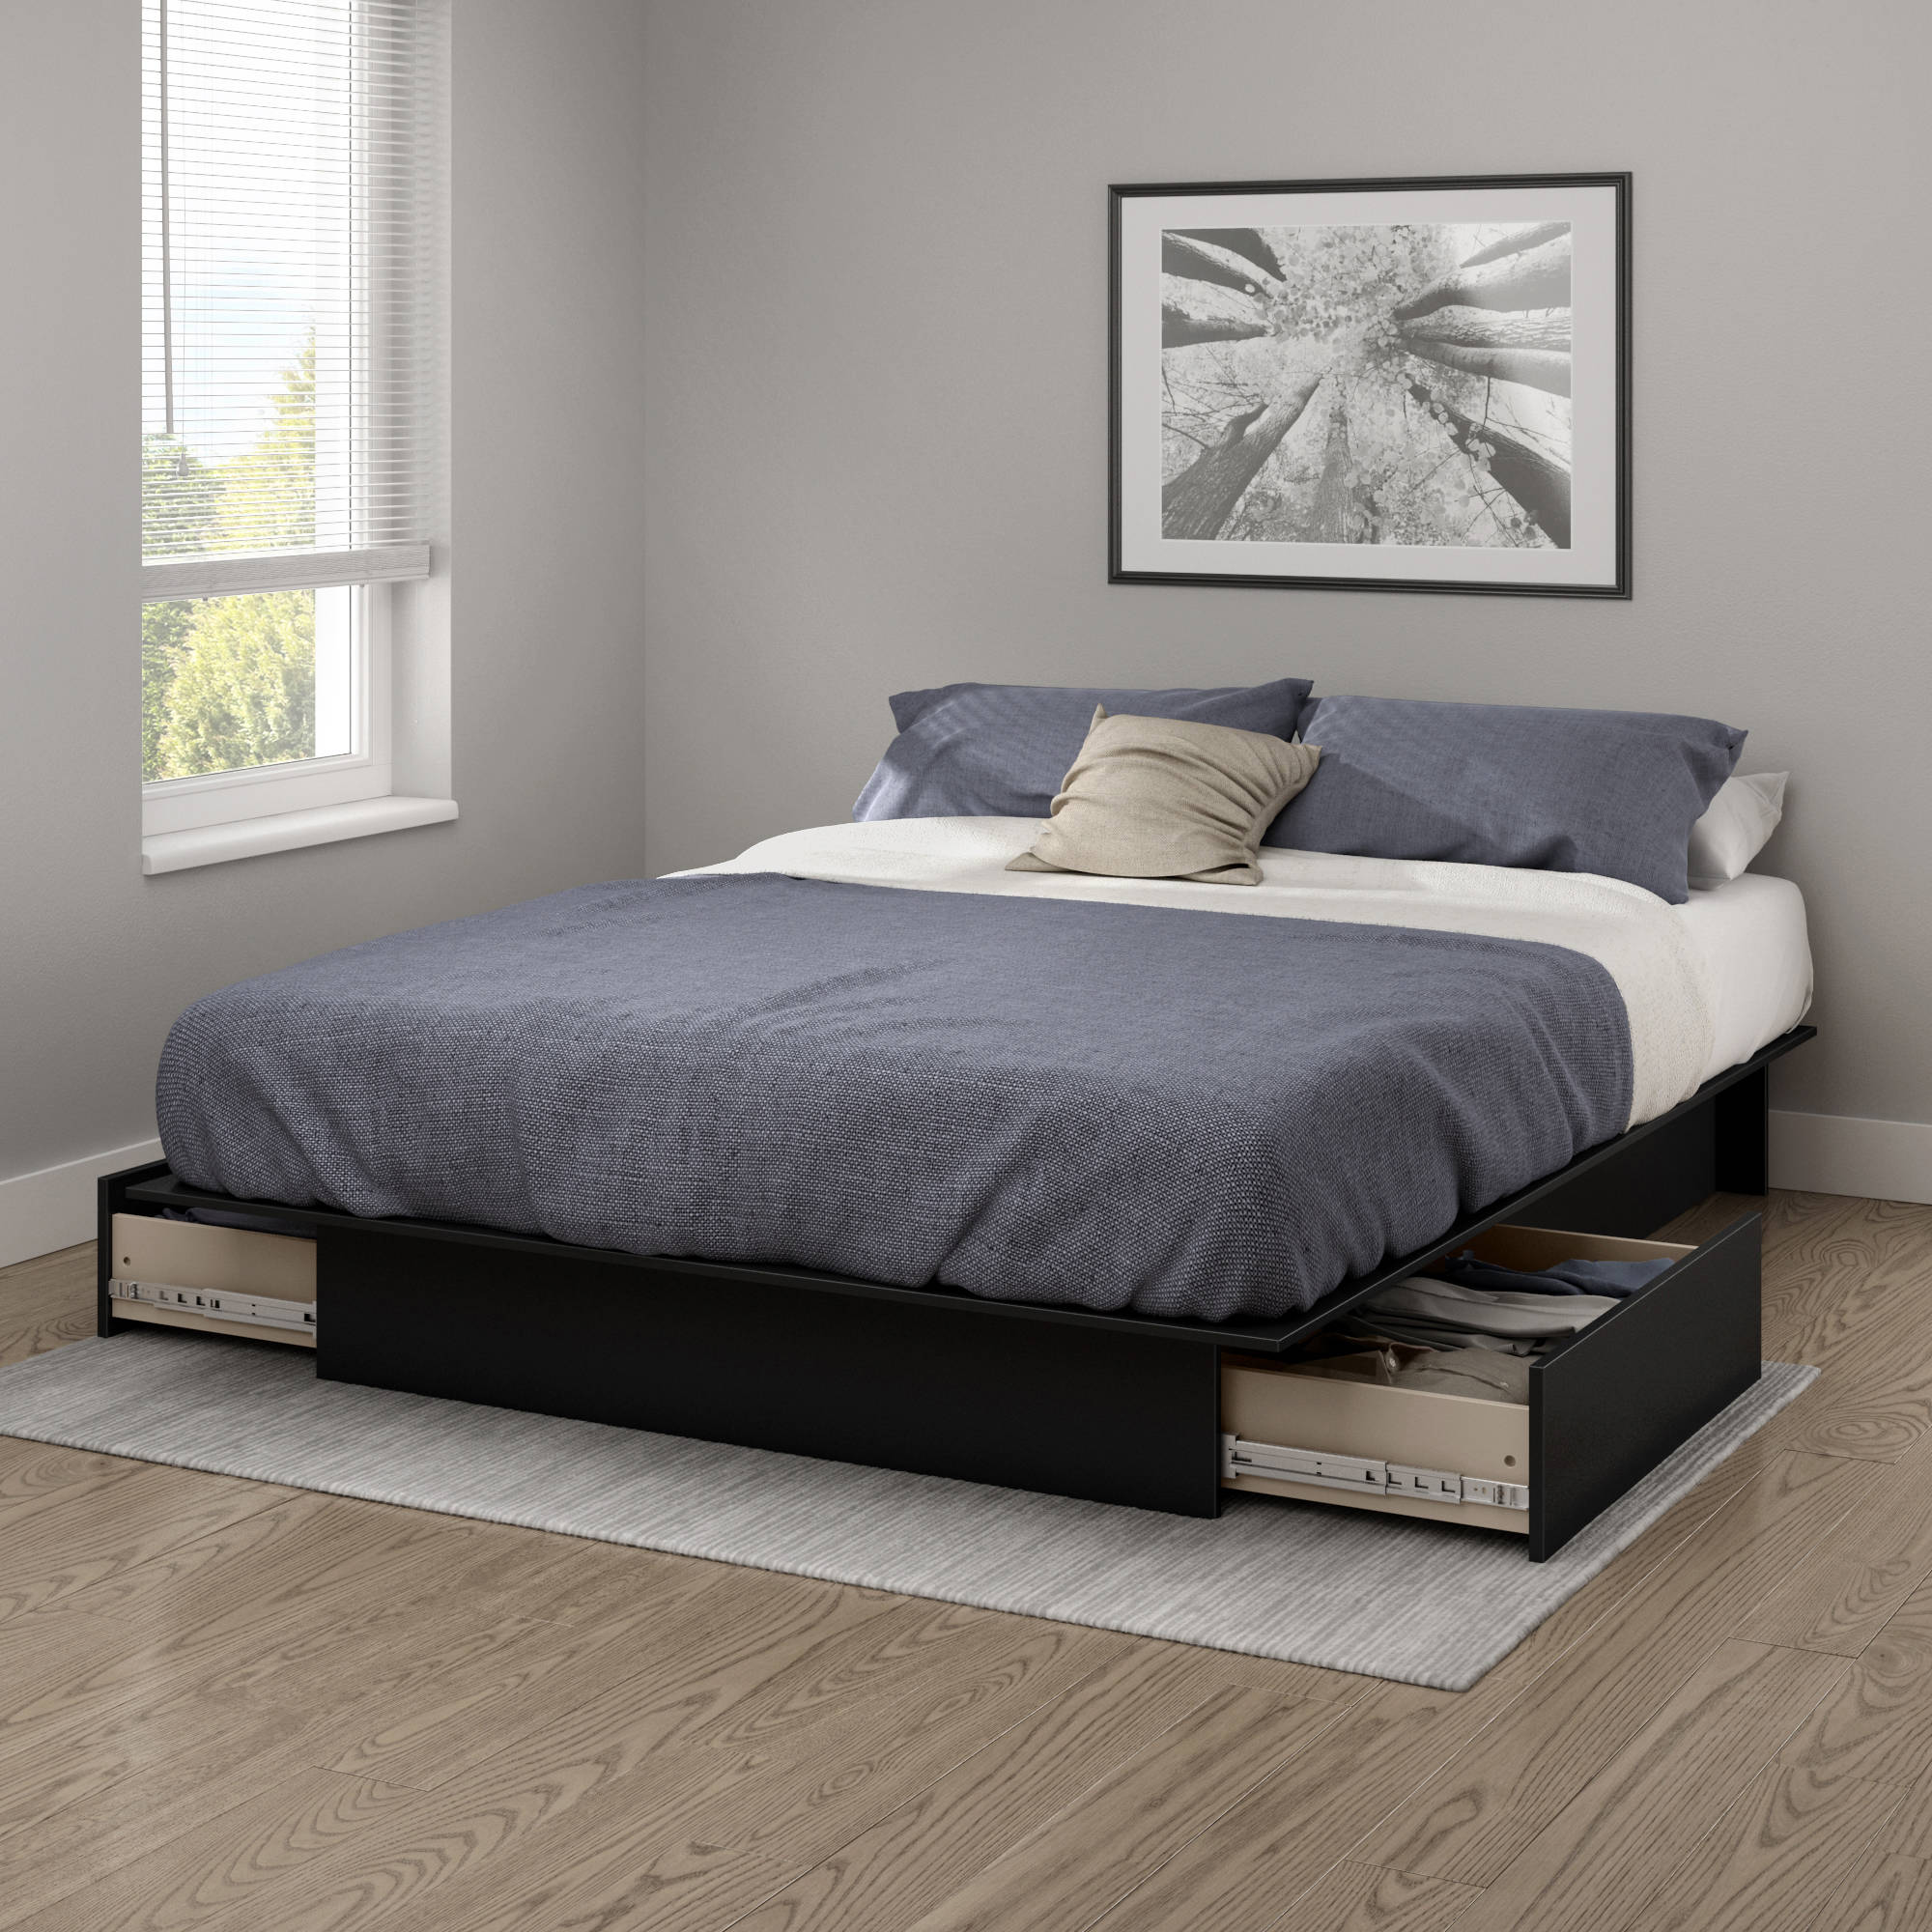 Pictures of platform beds - South Shore Soho Full Platform Bed 54 Multiple Finishes Walmart Com